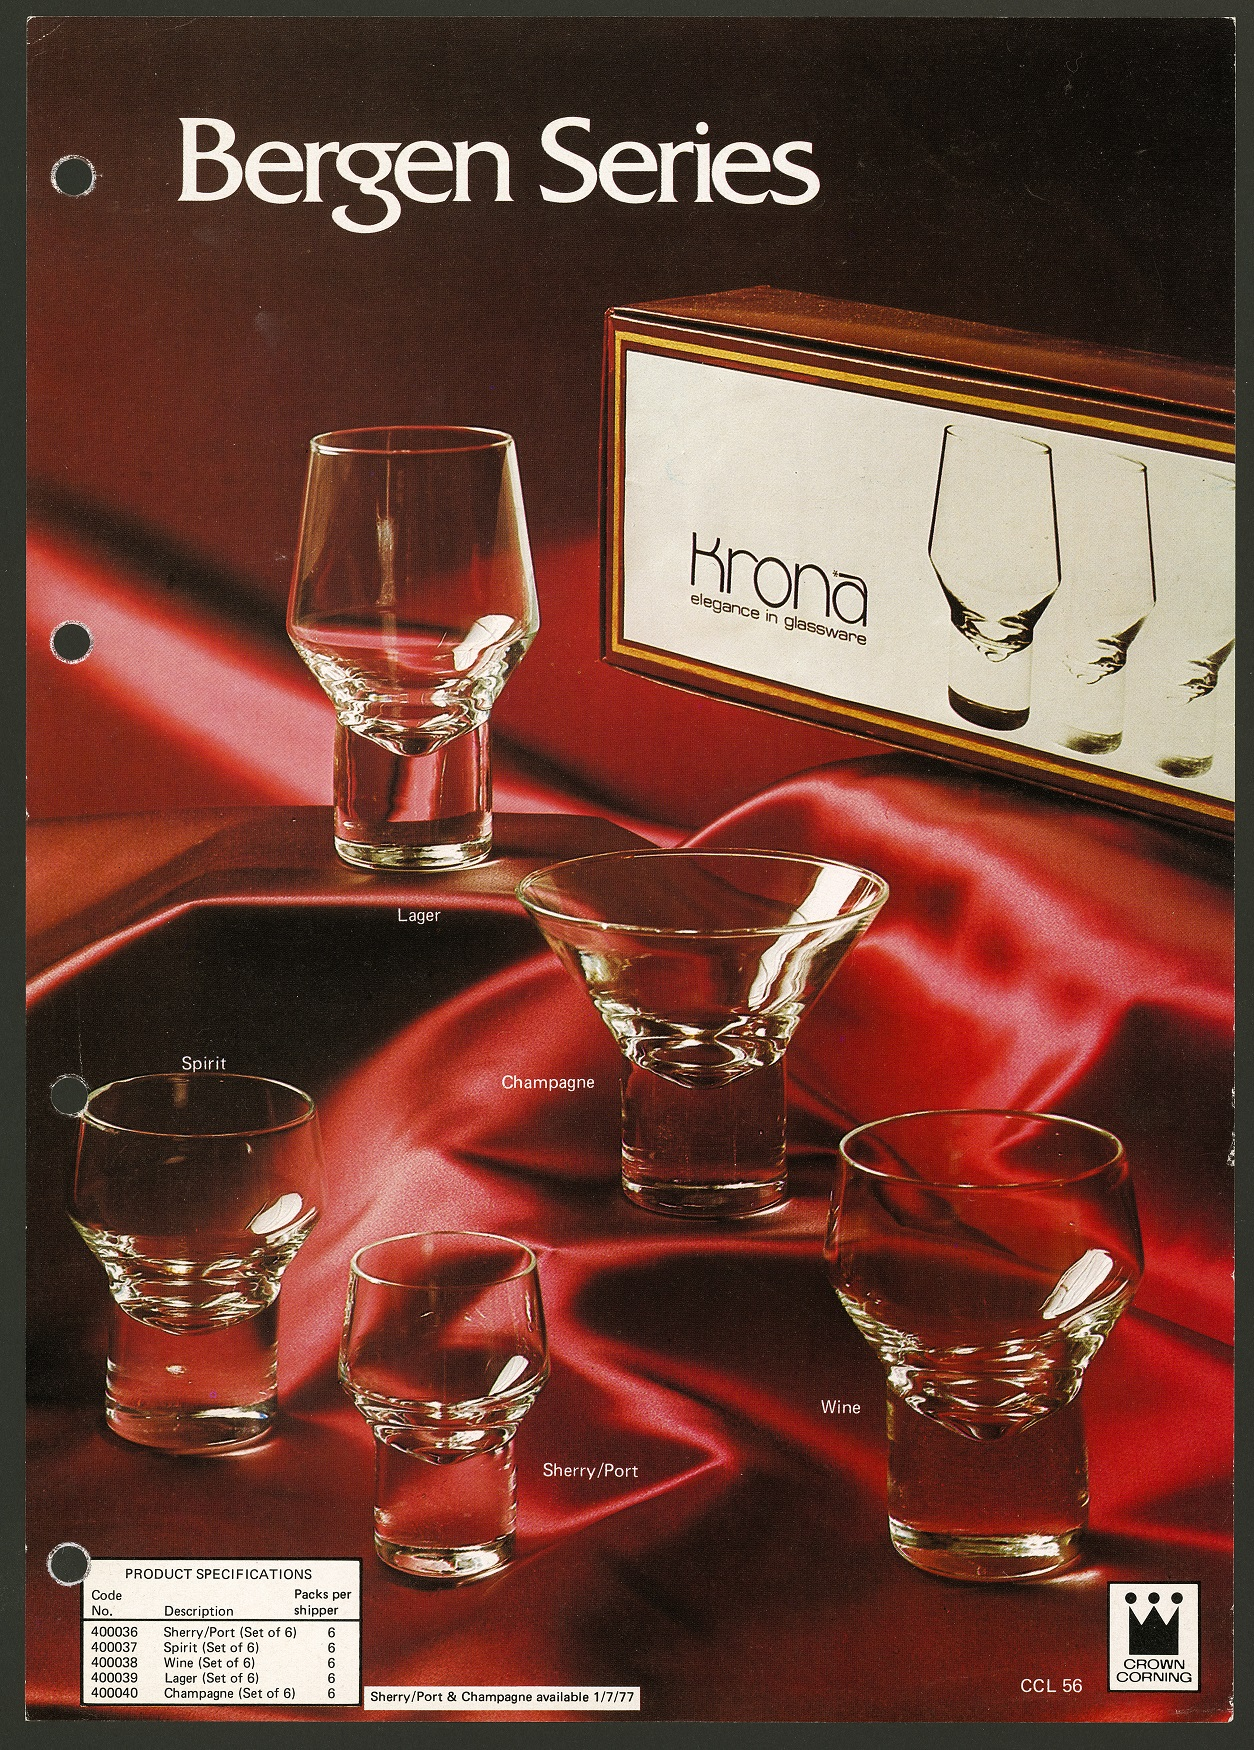 Advertising photograph for 'Bergen Series' drinking glasses. Glasses of various shapes and sizes are displayed on a red satin fabric, with packaging for the glasses in the background.